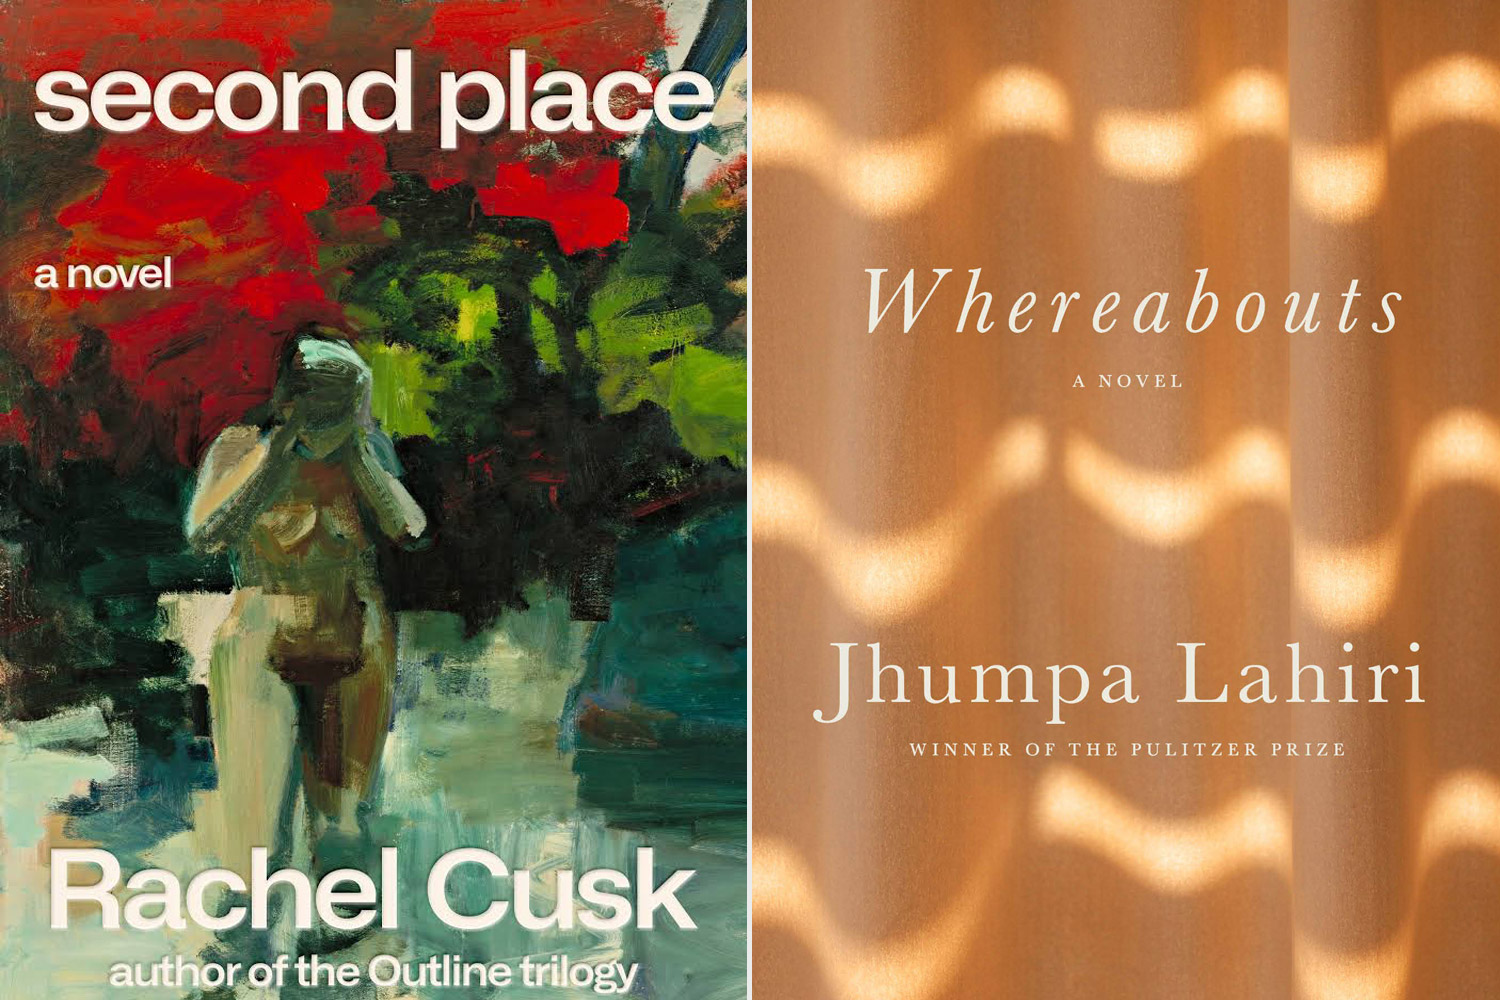 SECOND PLACE by rachel cusk and WHEREABOUTS by jhumpa lahiri